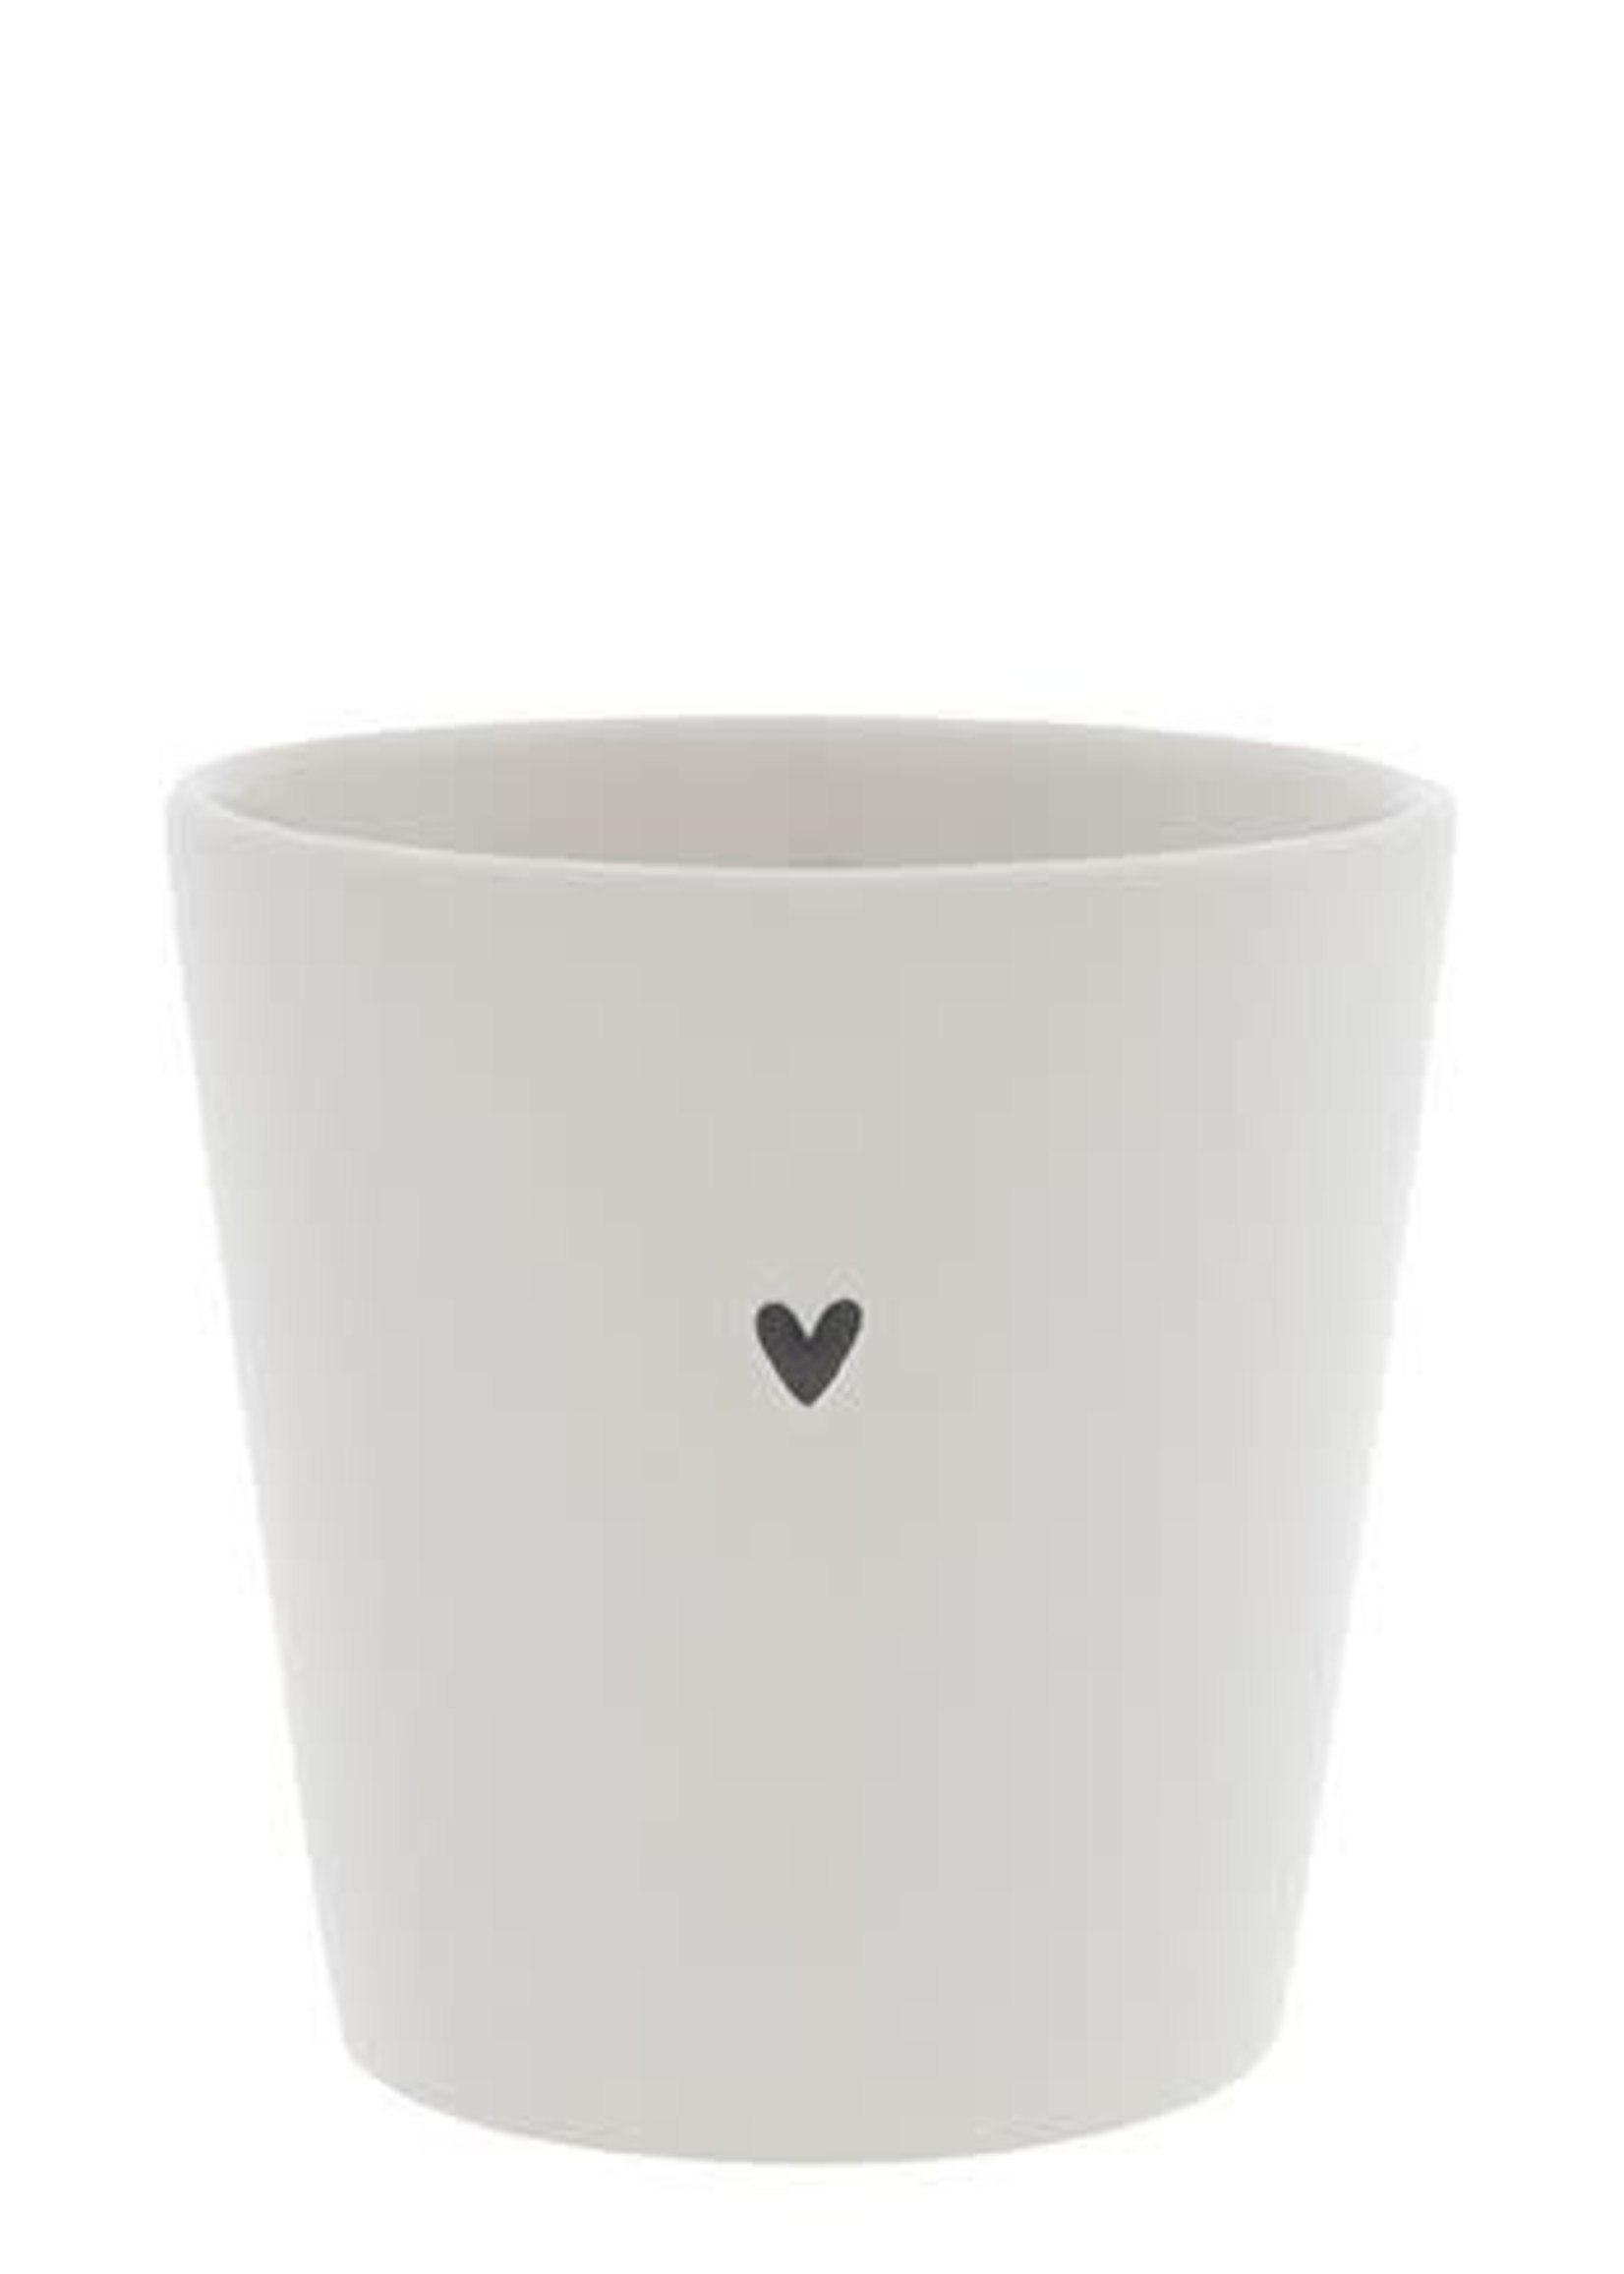 BASTION COLLECTIONS Cup white / heart 9x9x7,5